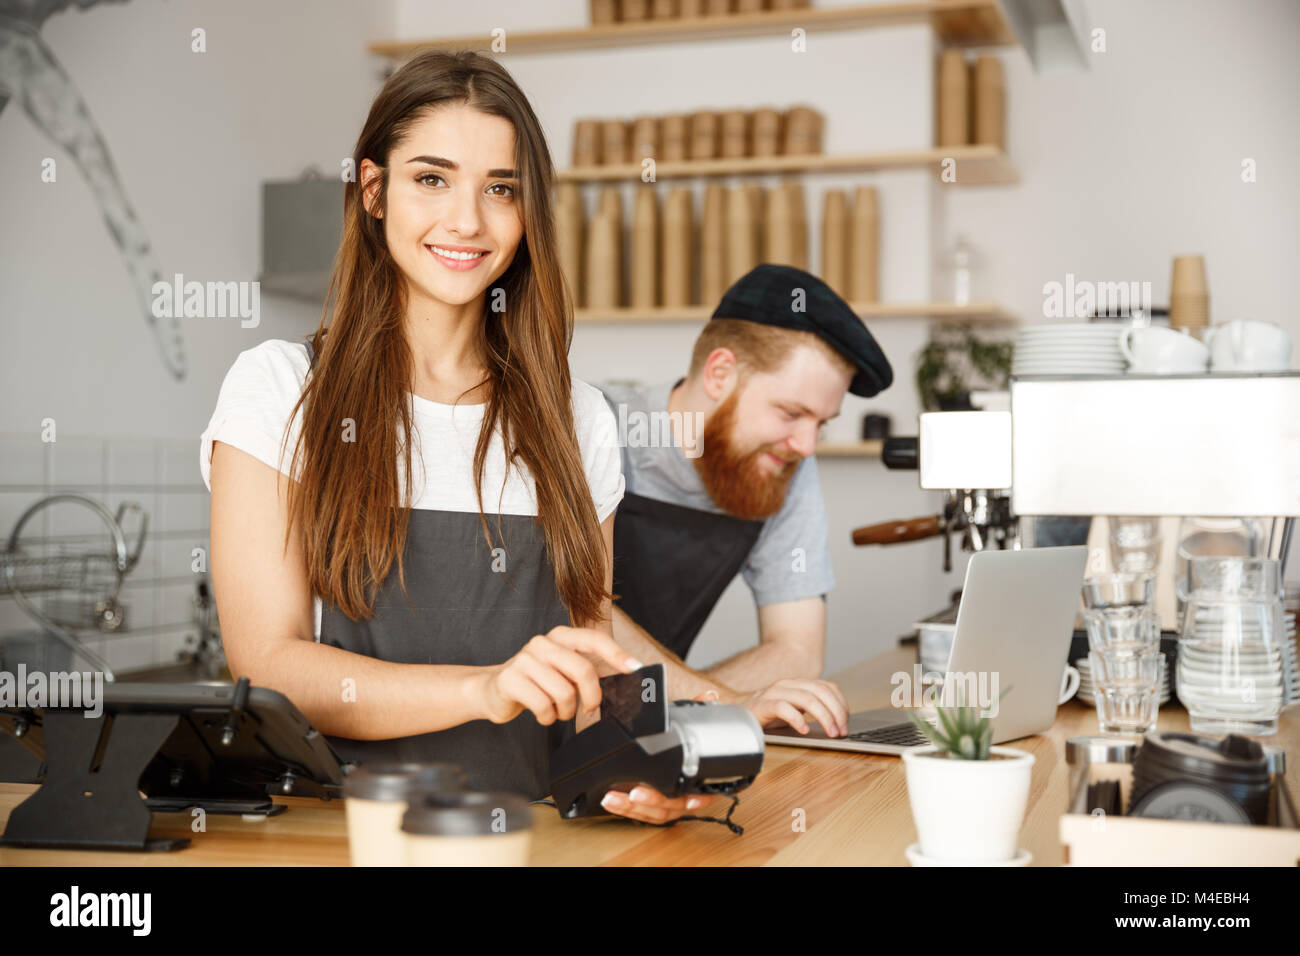 Coffee Business Concept - Beautiful female barista giving payment service for customer with credit card and smiling Stock Photo